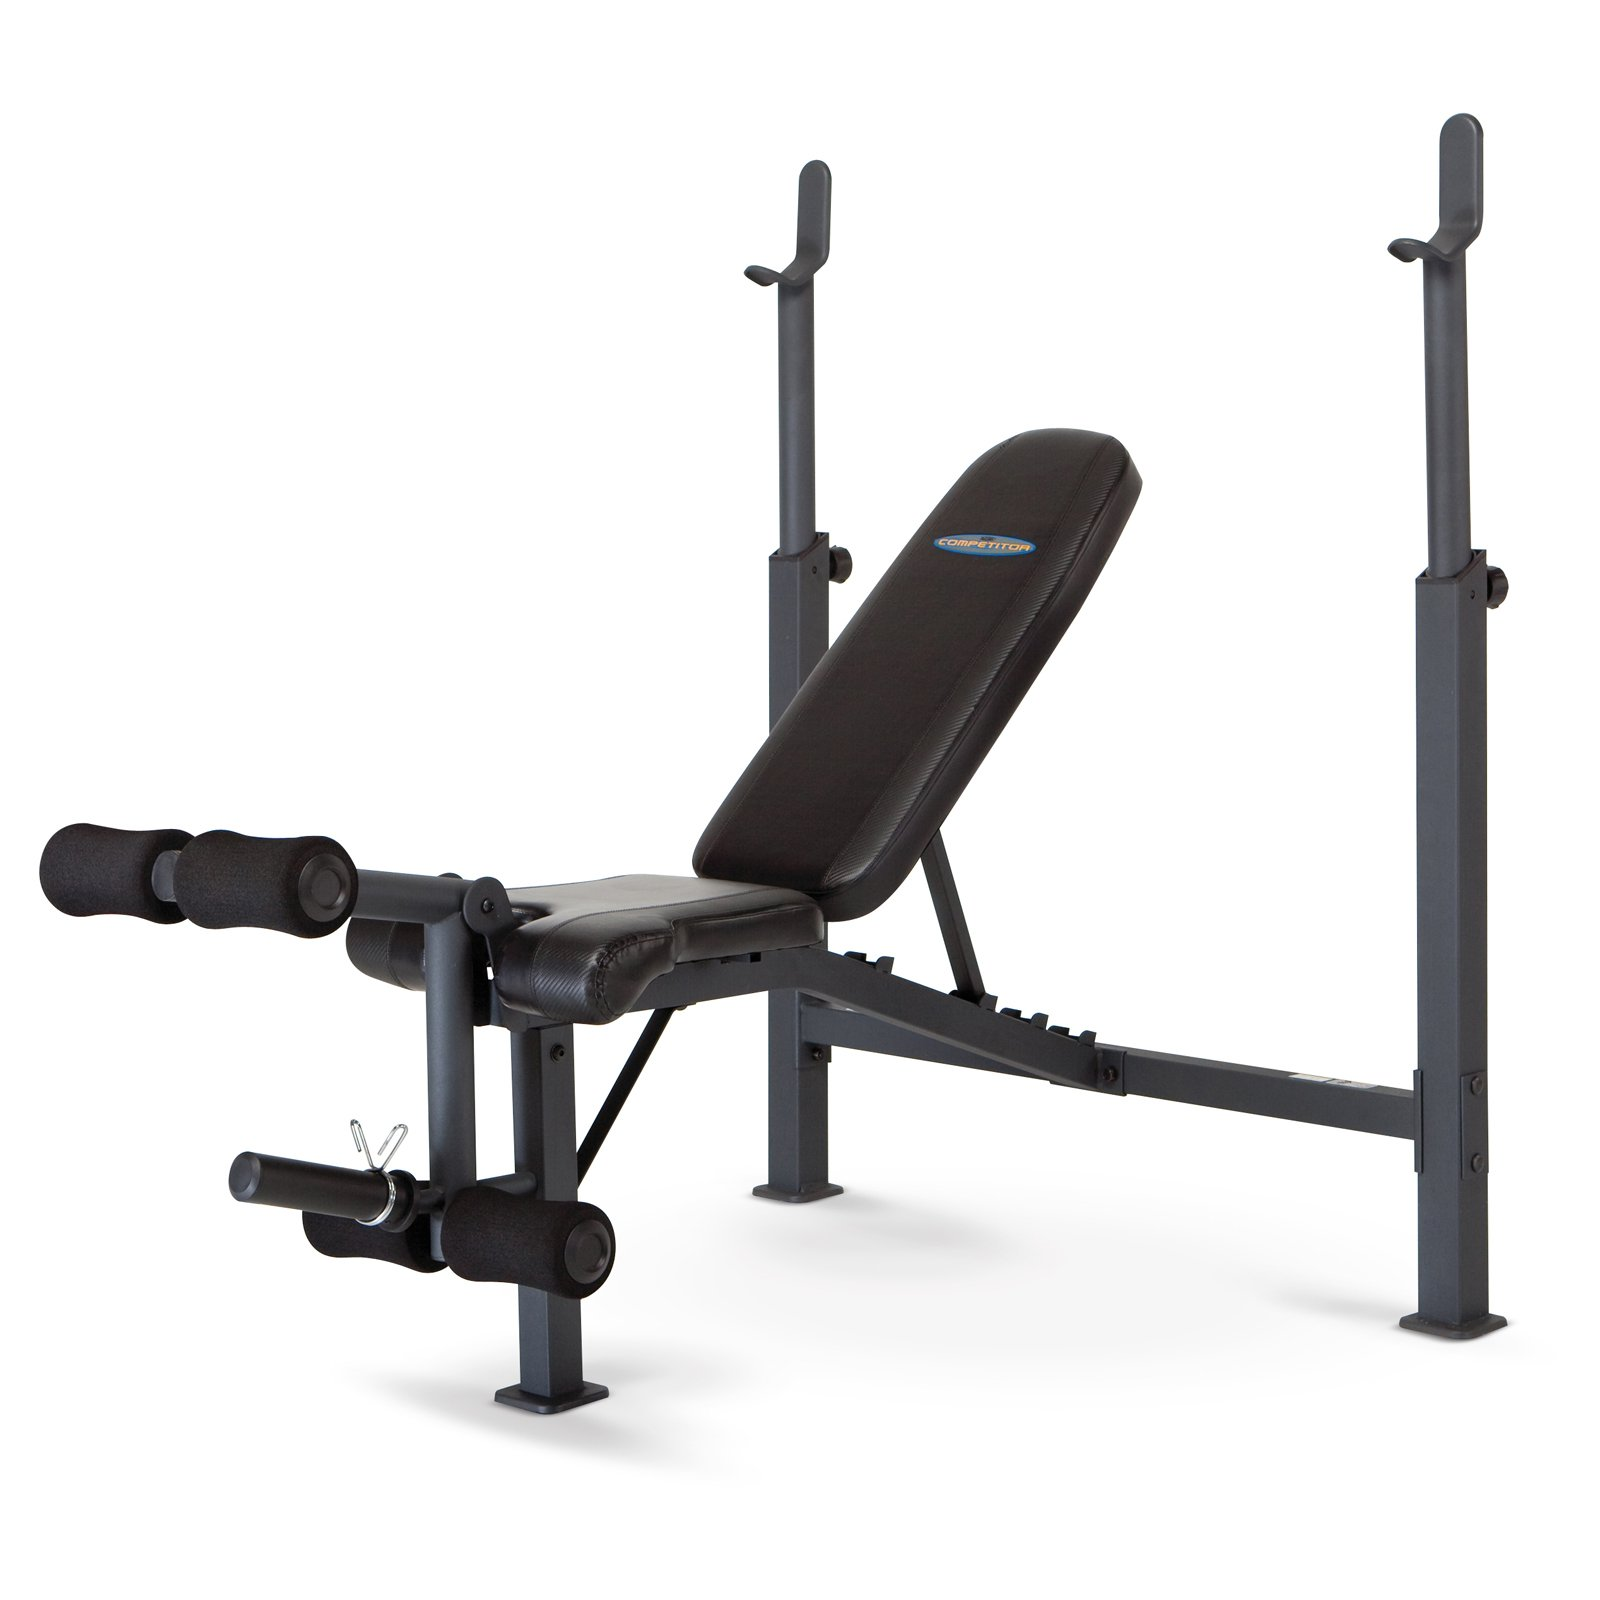 spokobo and catalog com dips product lifting s folding bar kobo set stand images exercise buy multi weight squat pdp bench paytm with